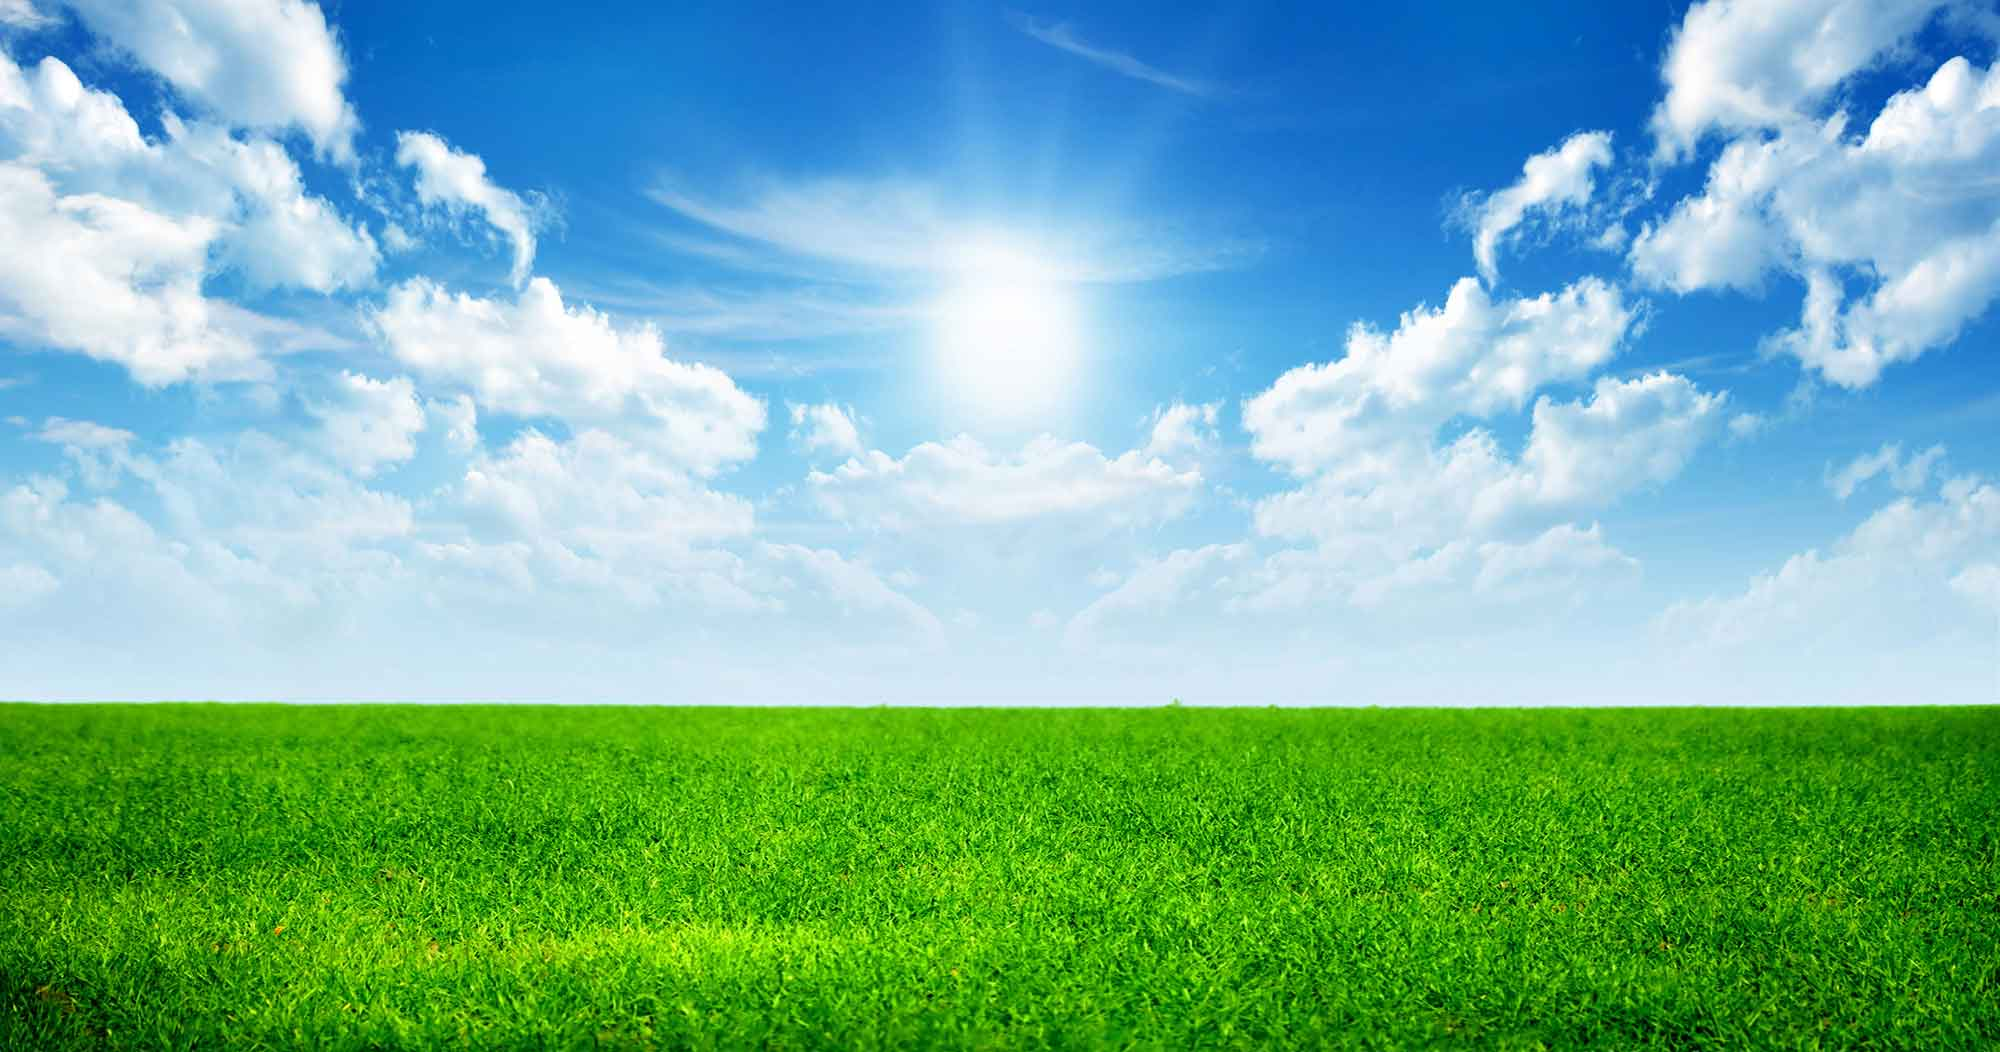 sky-grass-background-reduced.jpg